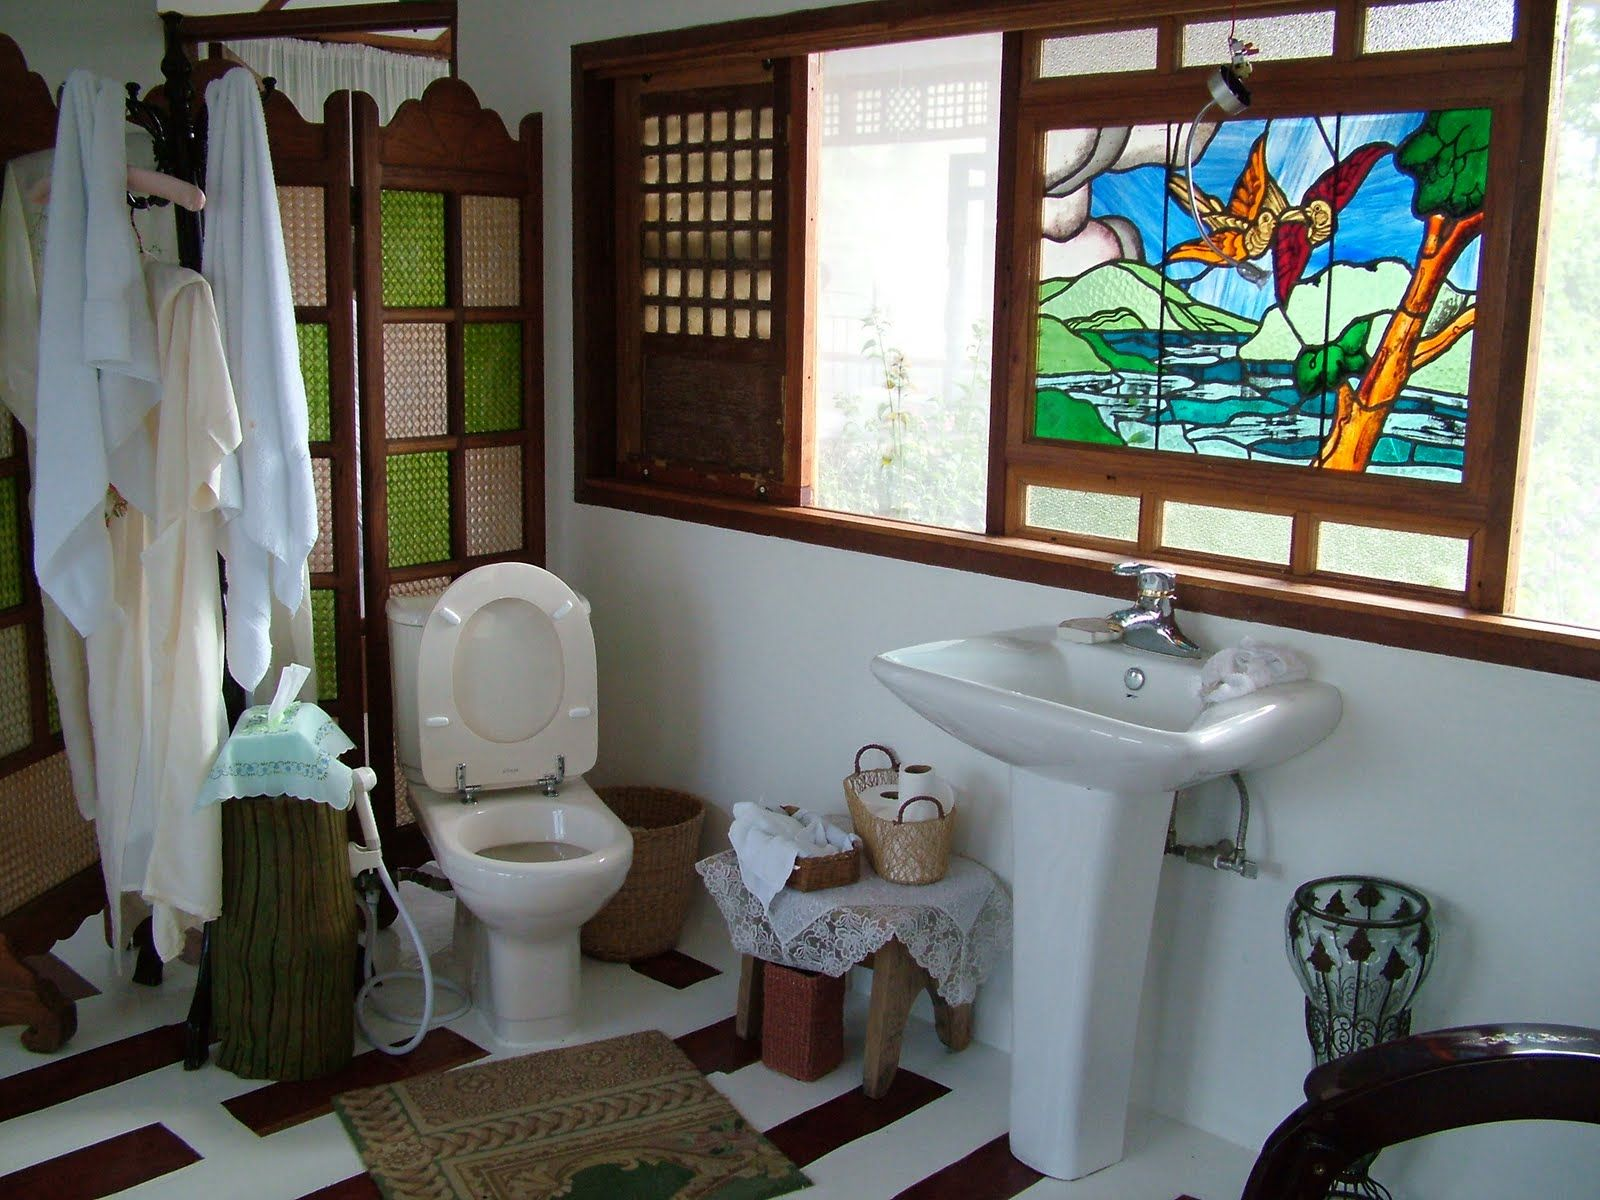 Sonya S Garden Bathroom With Images Room Design House